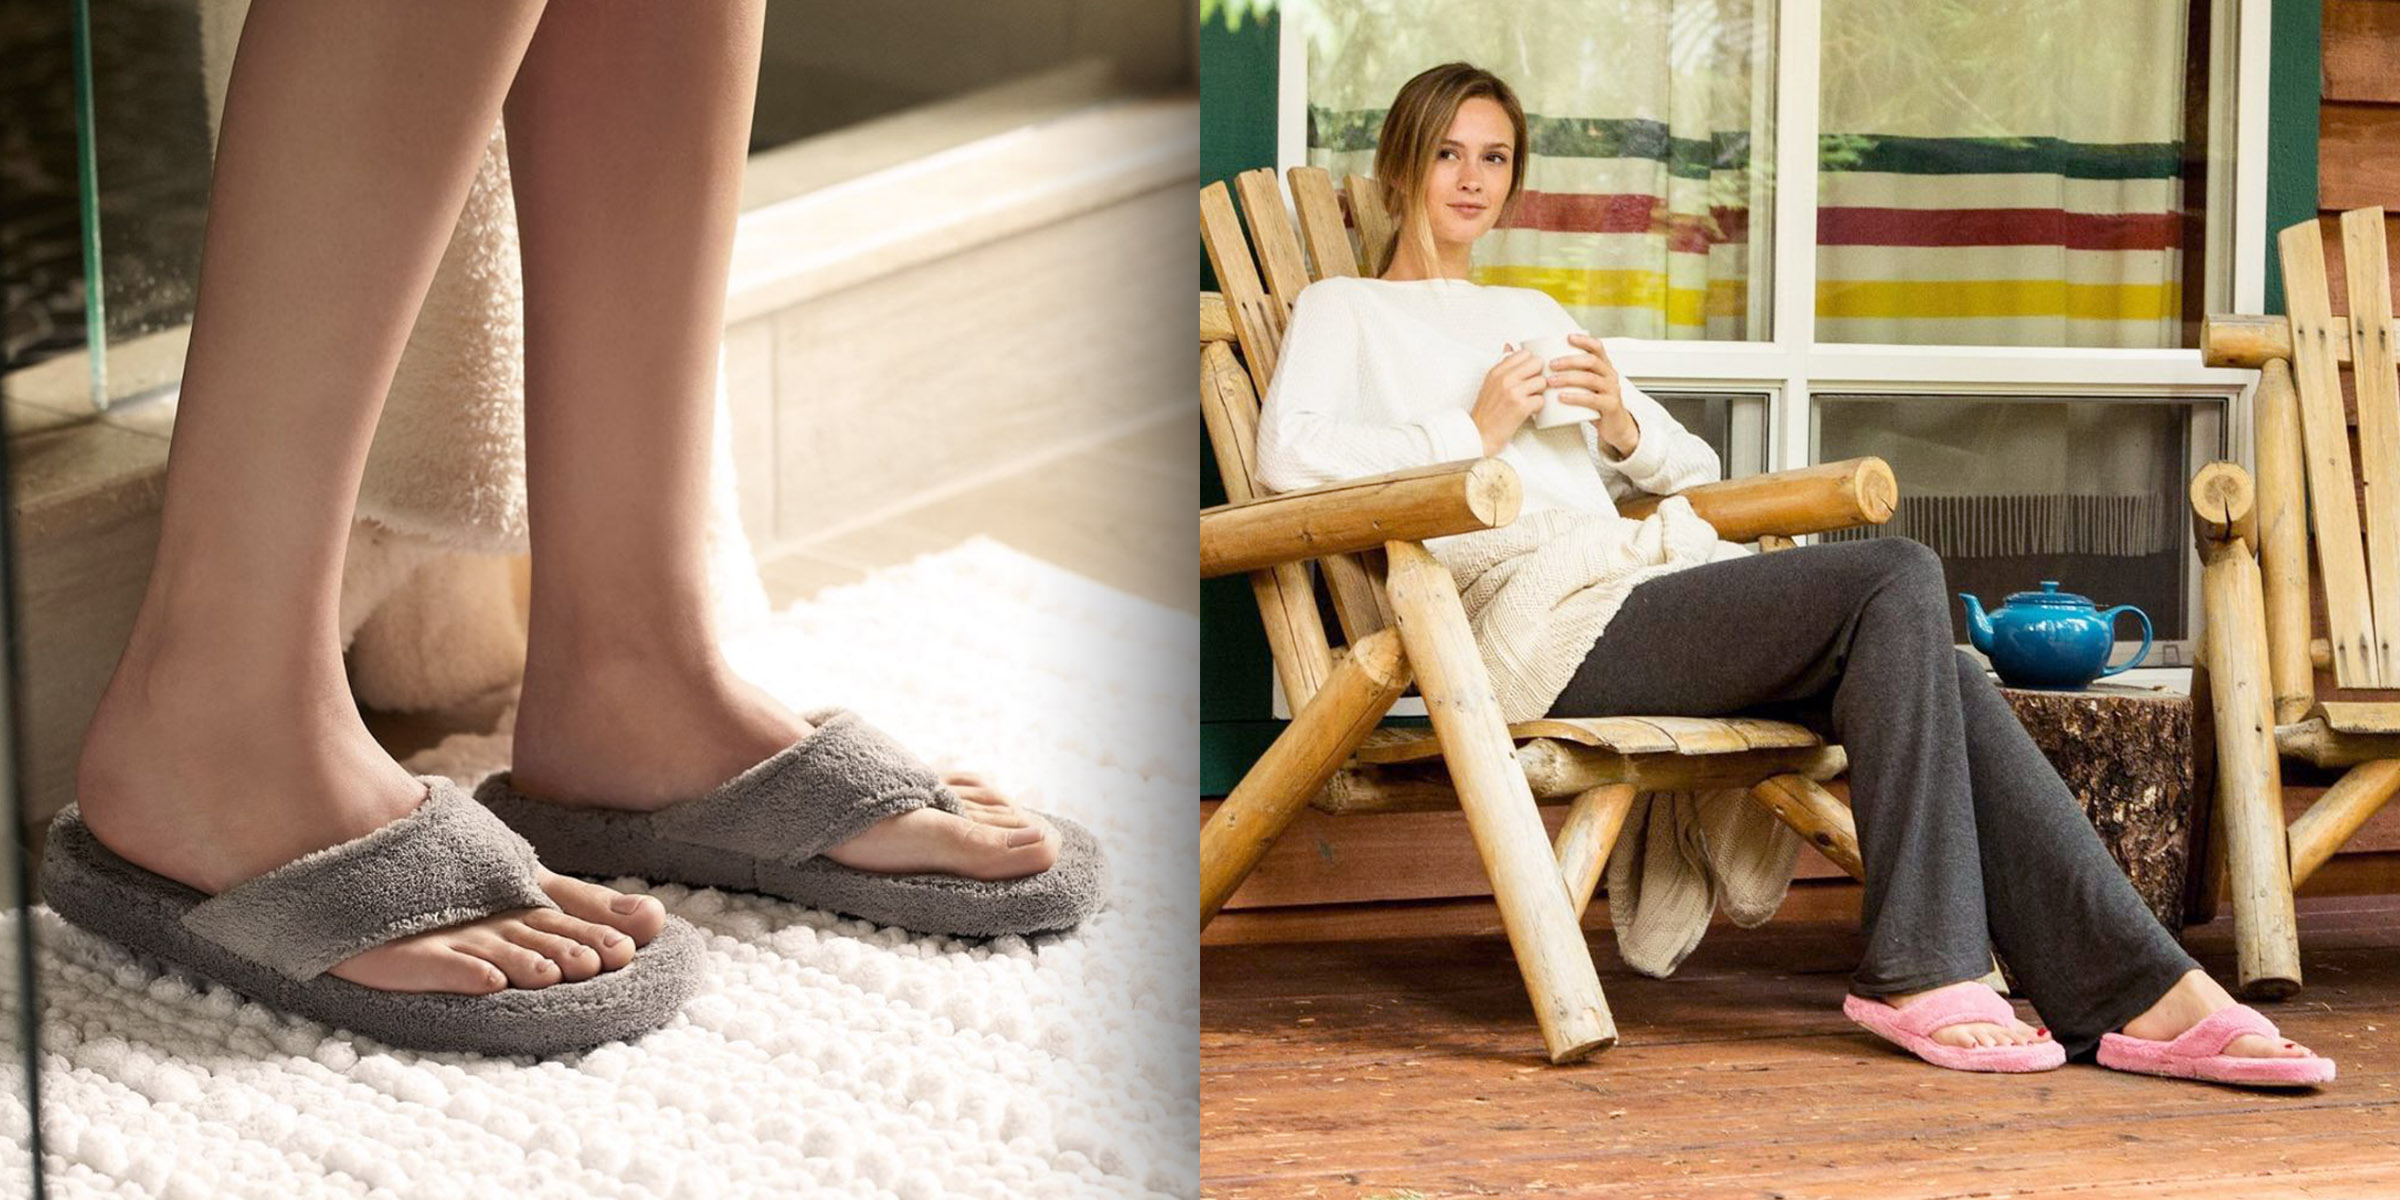 6 bestselling slippers you need at home